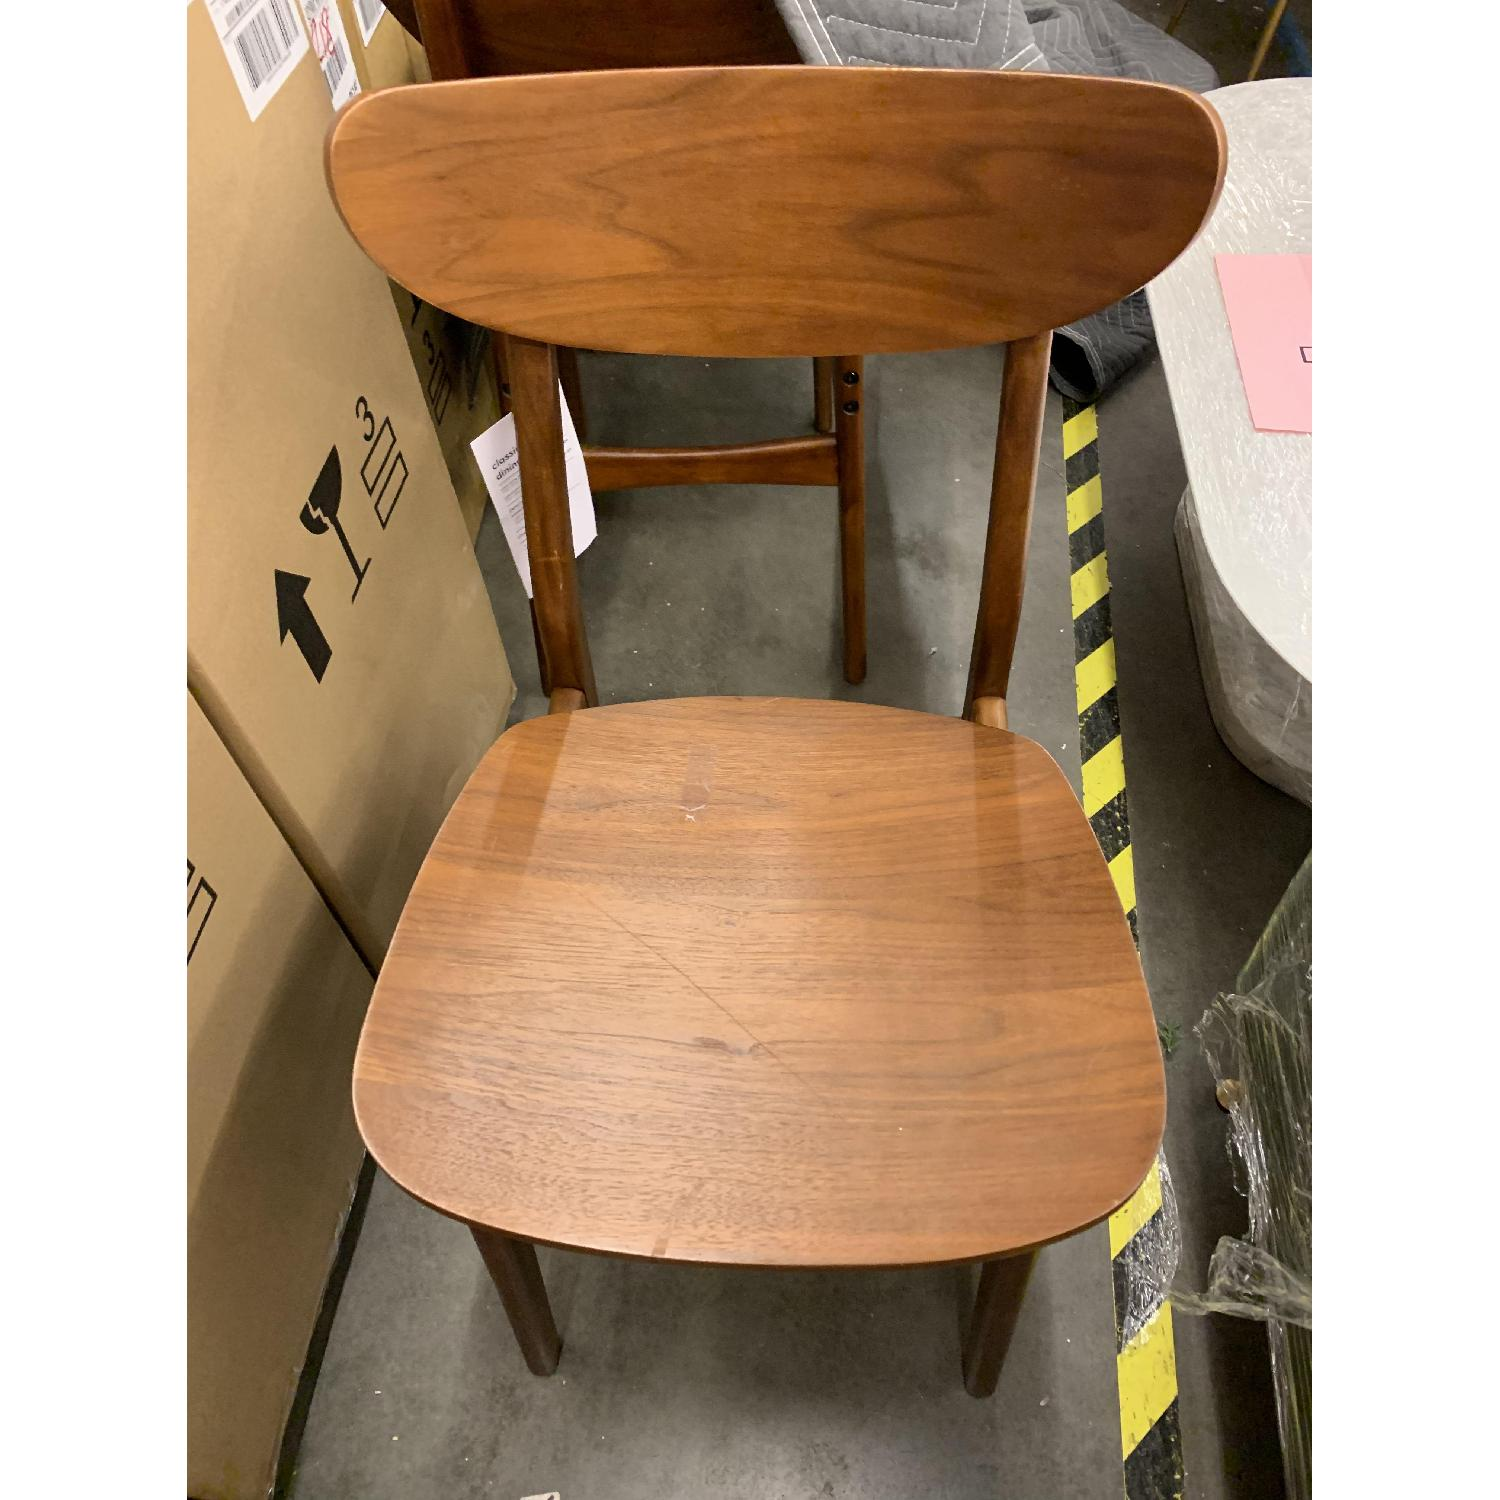 West Elm Classic Cafe Wood Dining Chairs in Walnut - image-3